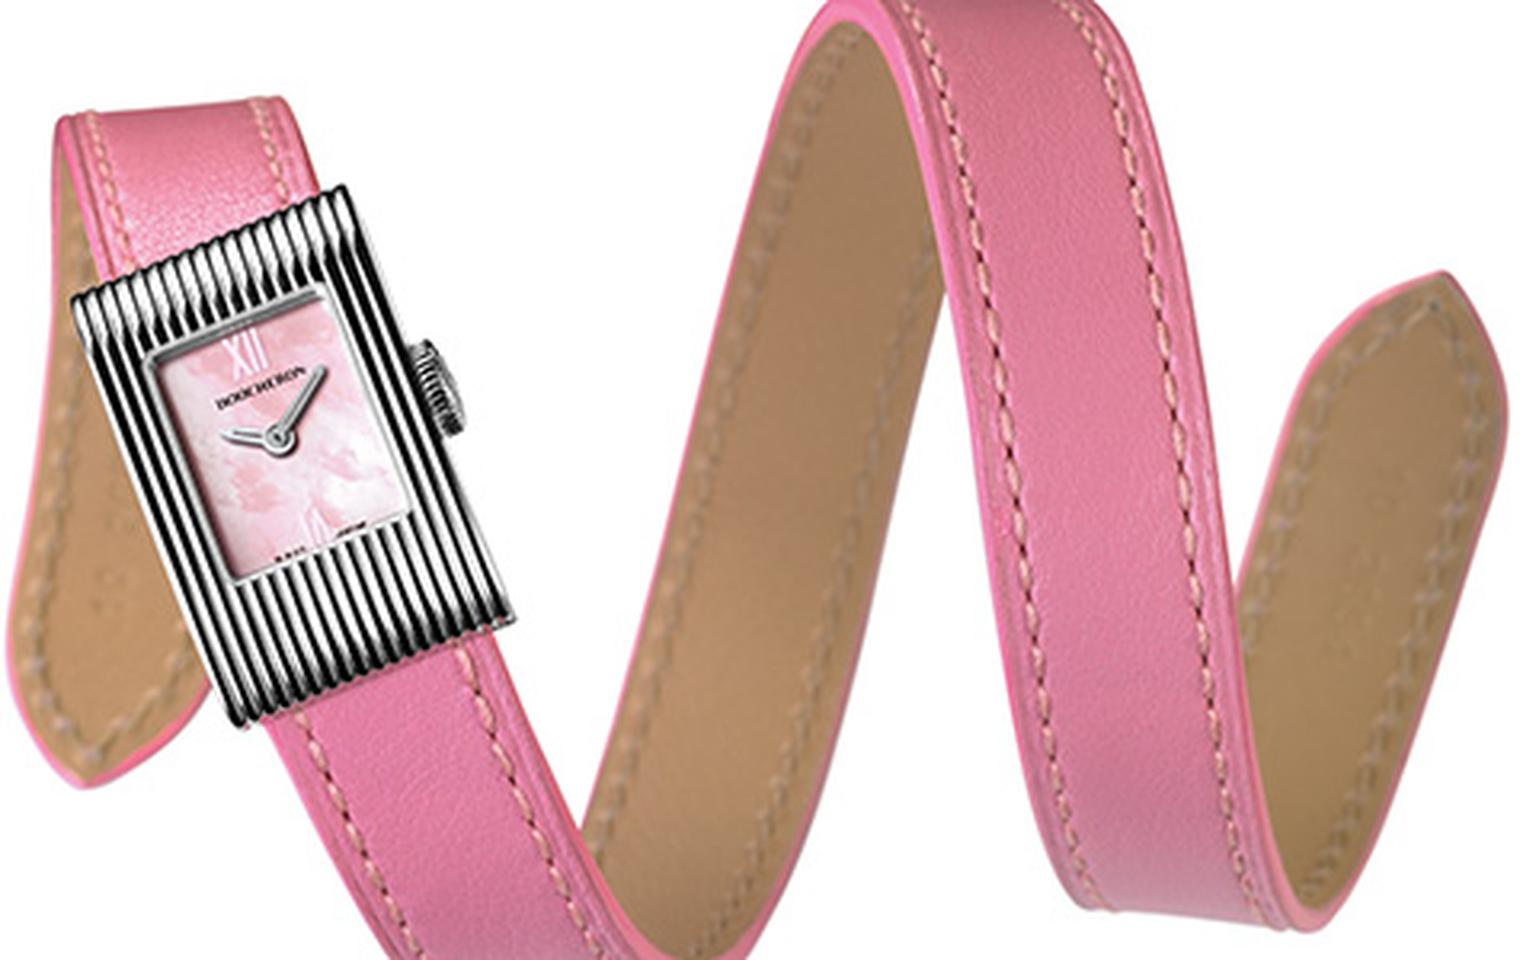 Boucheron Reflet on pink double strap HP